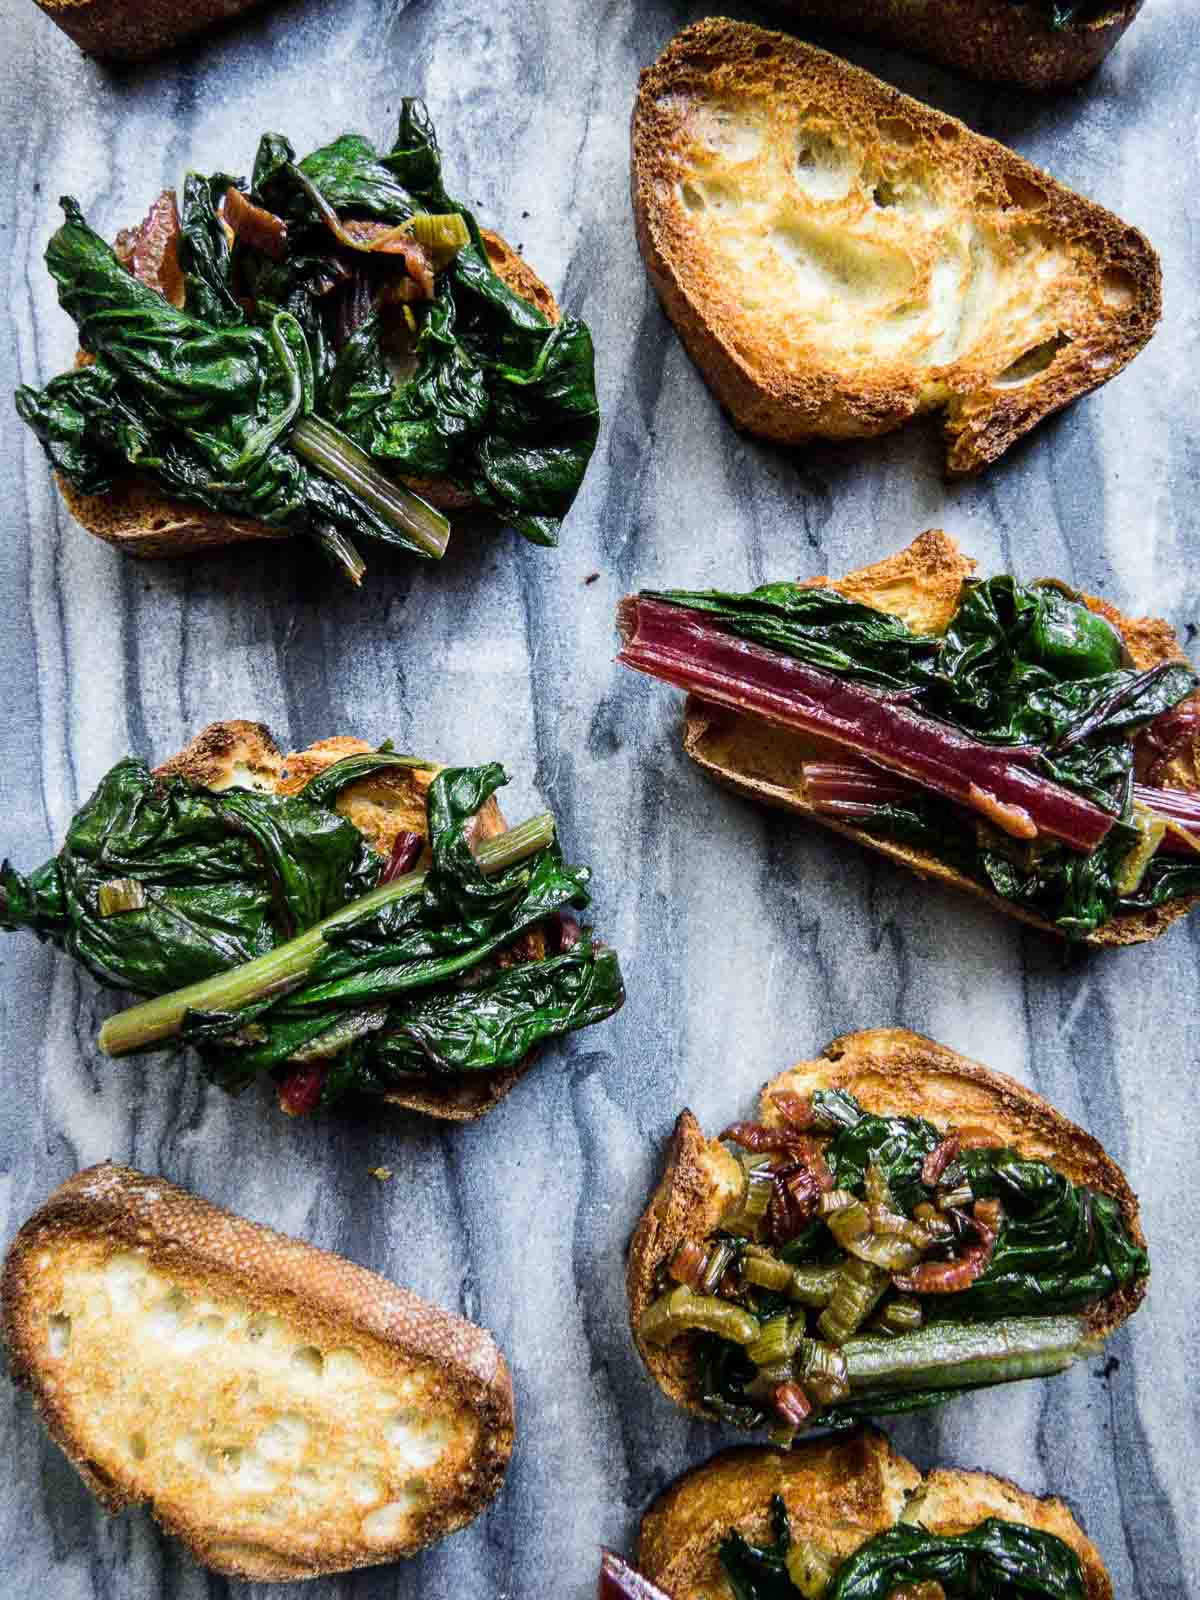 Nothing can get better than grilled or toasted bread topped with garden fresh garlicky Swiss chard. As an appetizer, savory snack or side, Garlicky Swiss Chard Bruschetta will be an easy and impressive addition to any menu!